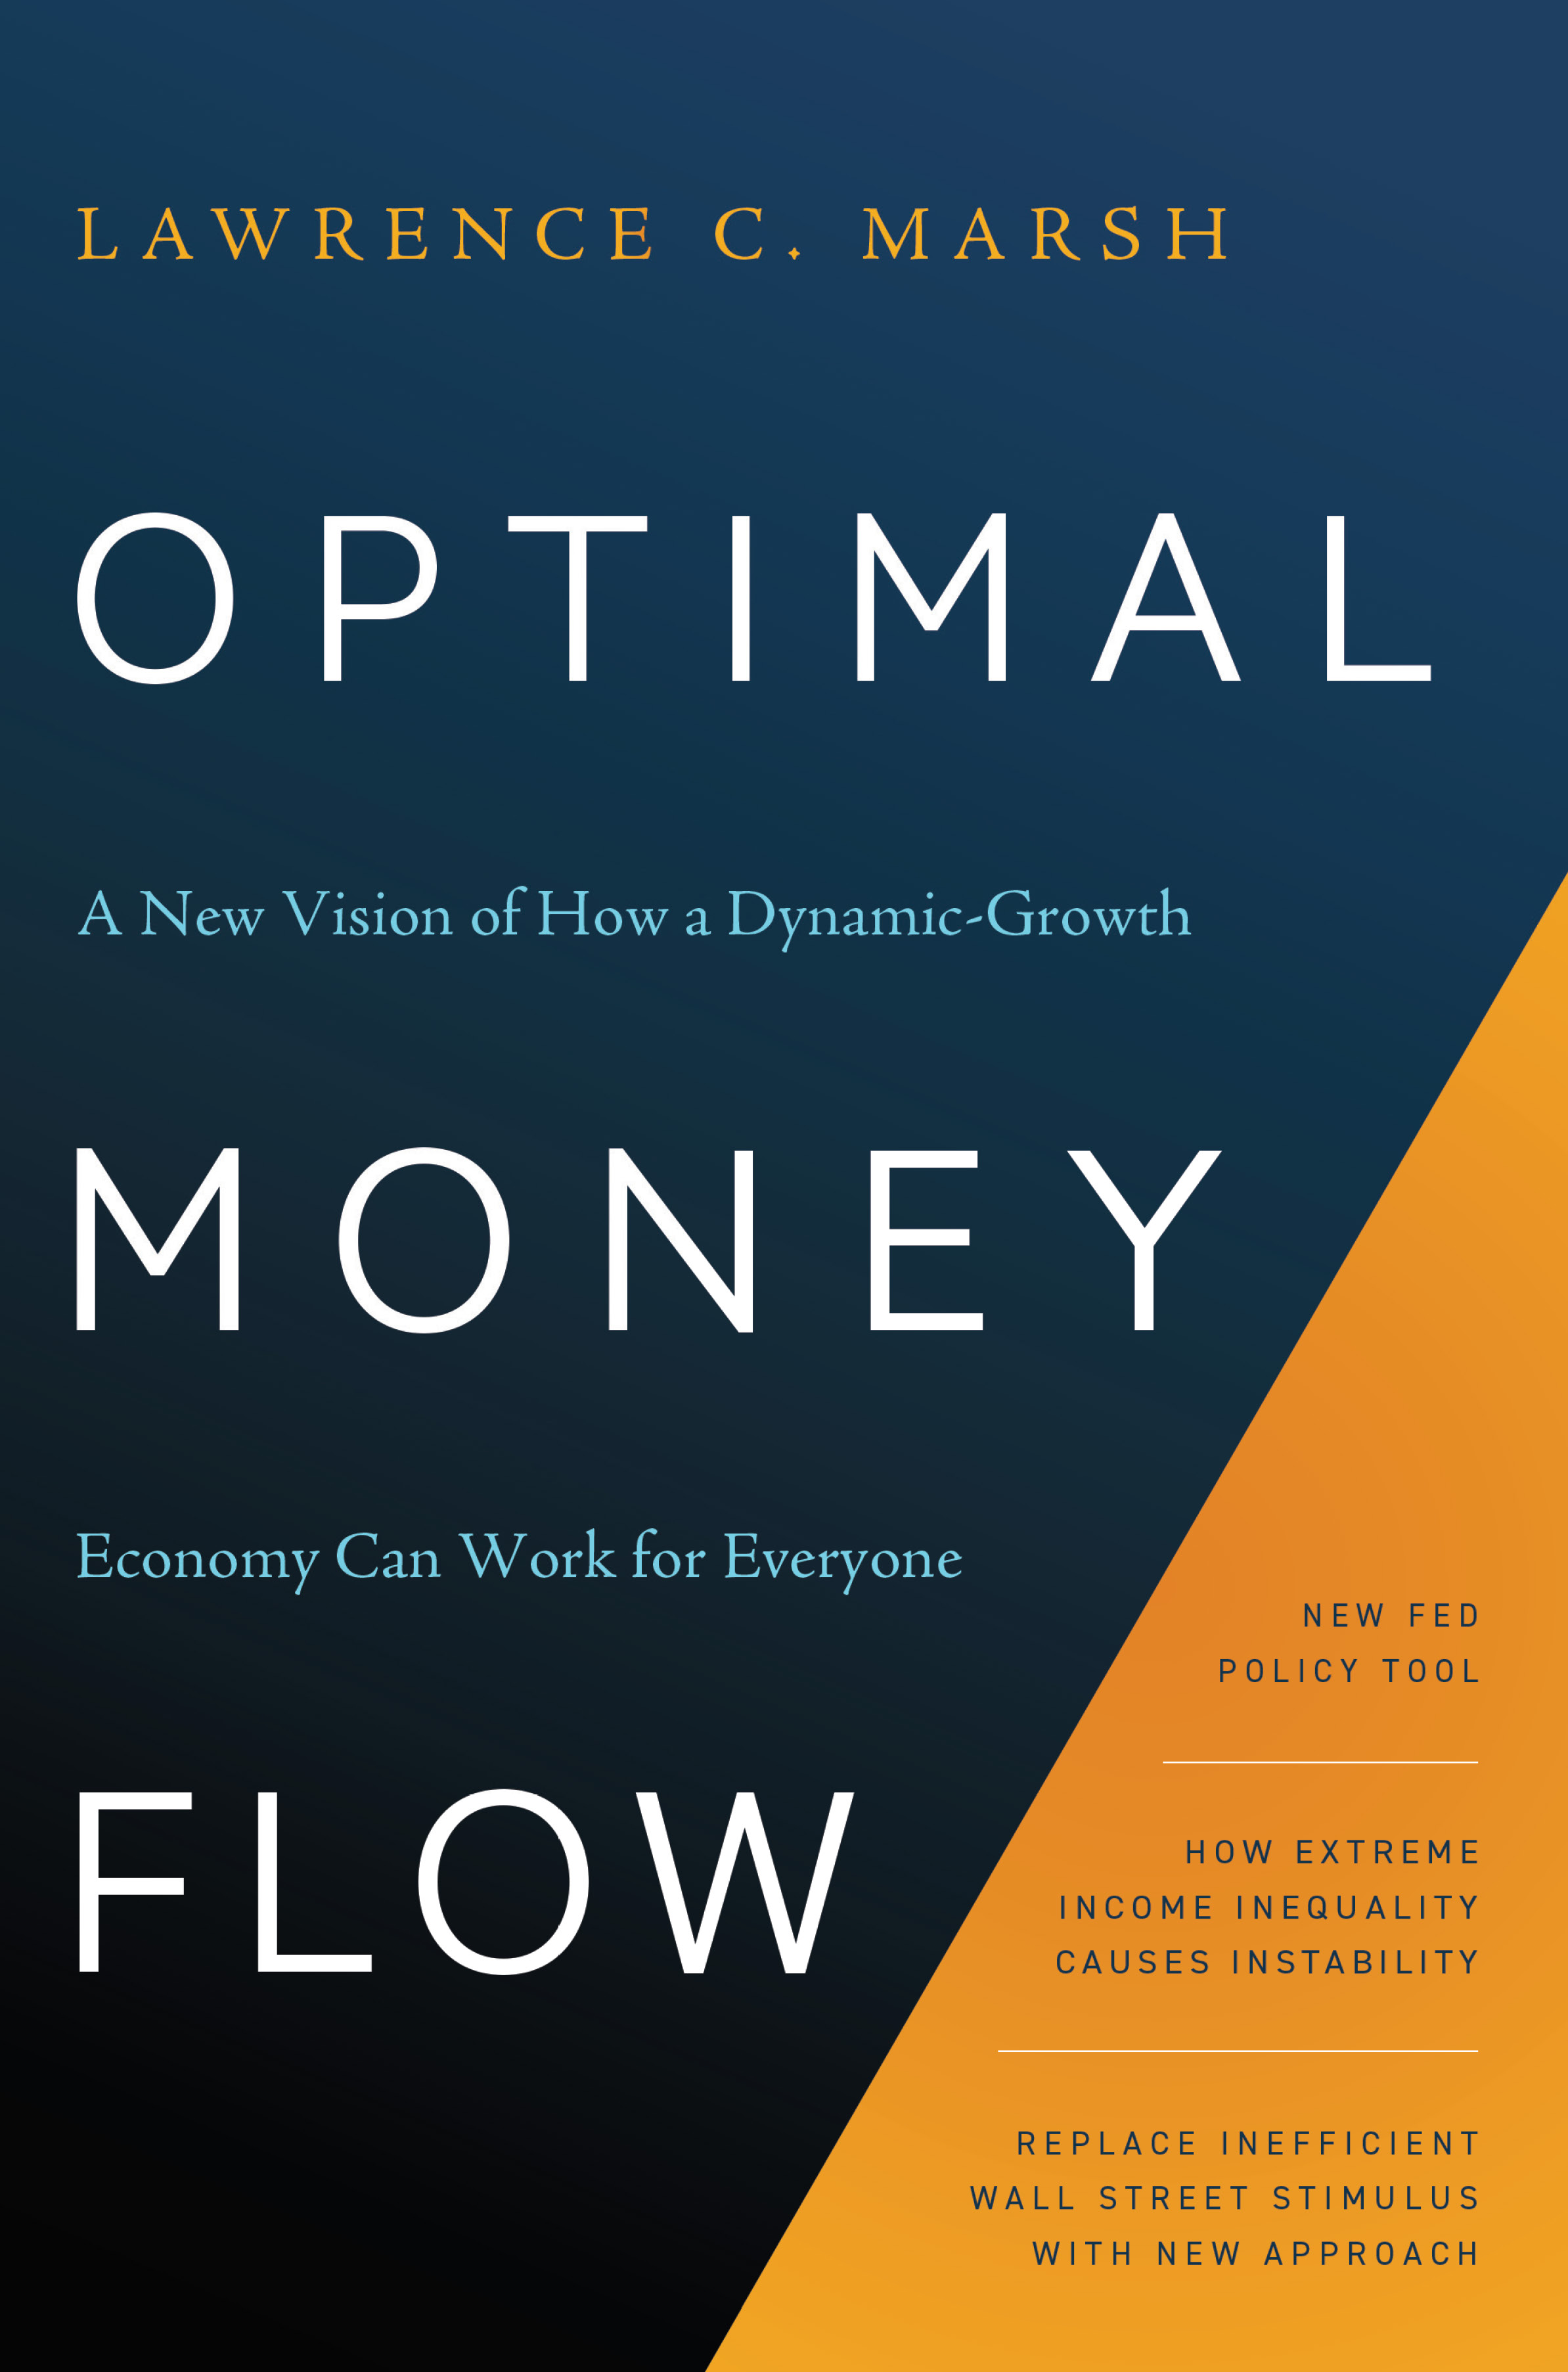 Optimal Money Flow: A New Vision of How a Dynamic-Growth Economy Can Work for Everyone